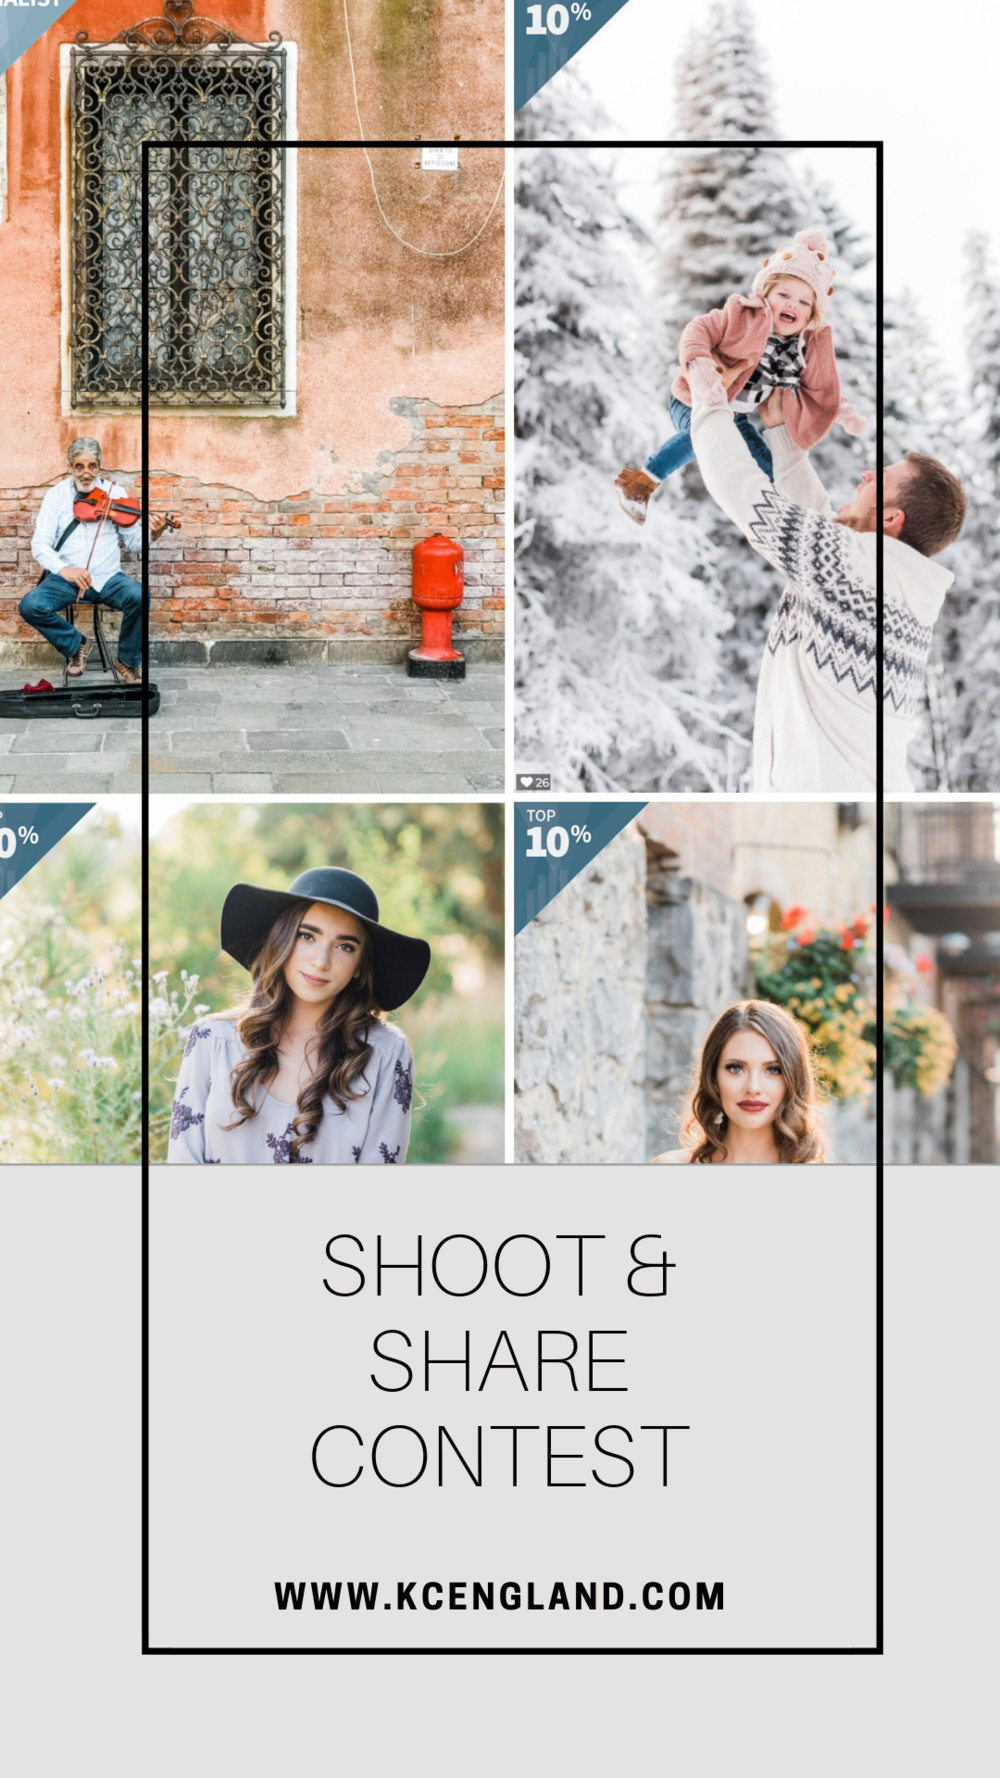 Shoot and Share Contest Results 2019